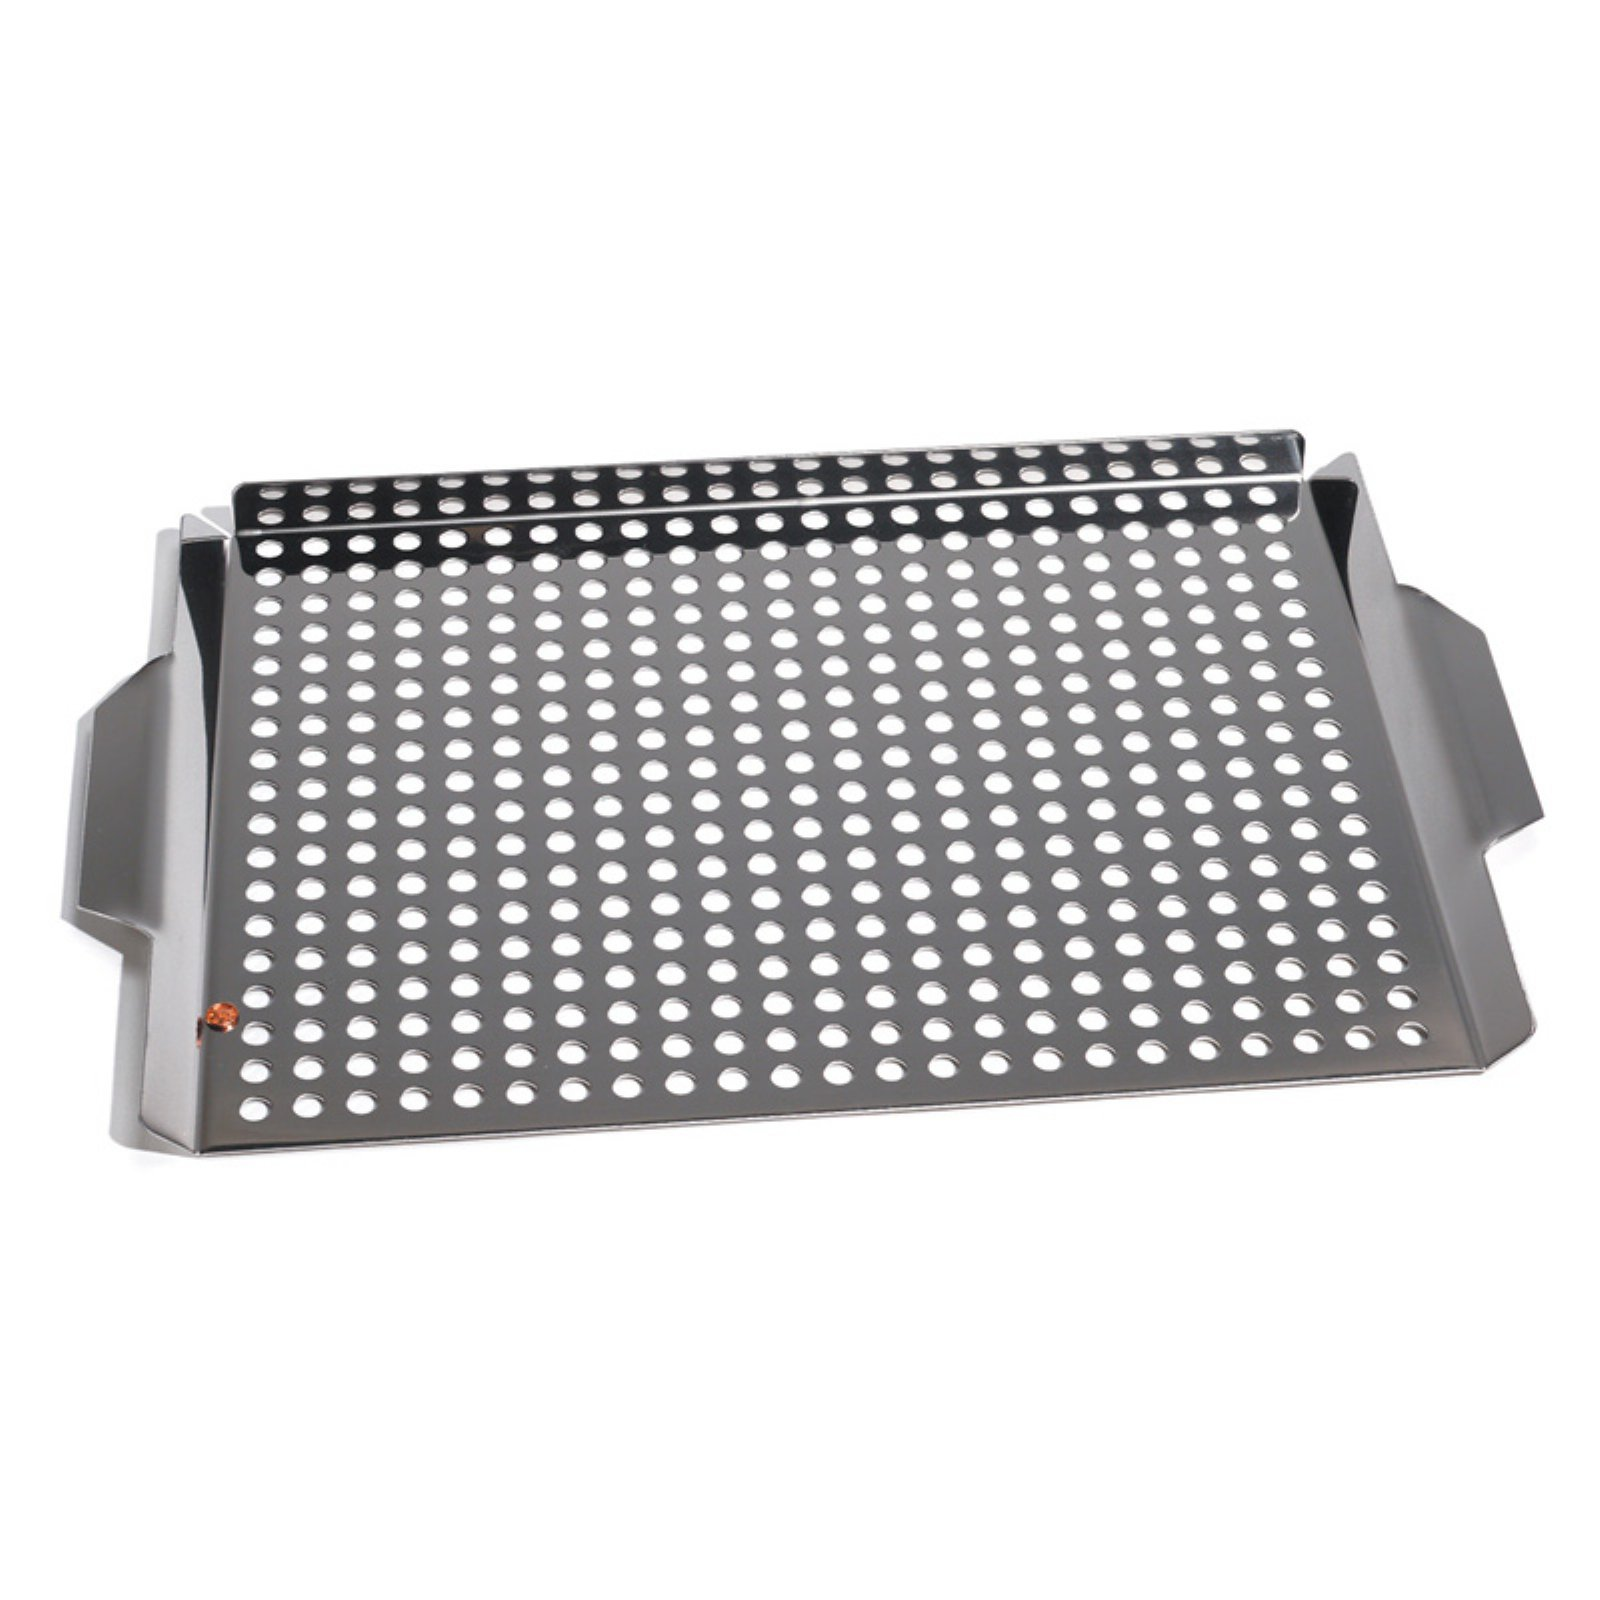 Outset QS71 Grill Grid with Handles - Stainless Steel